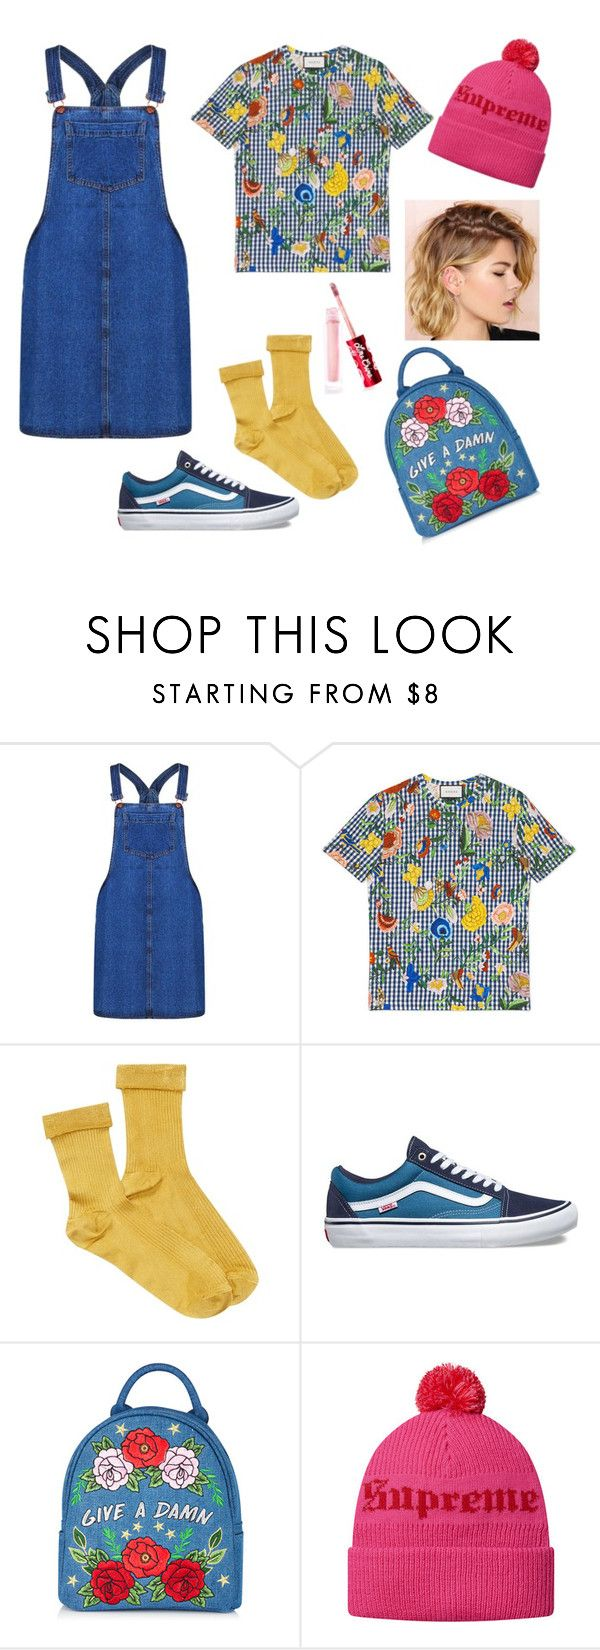 """#untitled8"" by yuna92 on Polyvore featuring Boohoo, Gucci, Free People, Vans and Lime Crime"